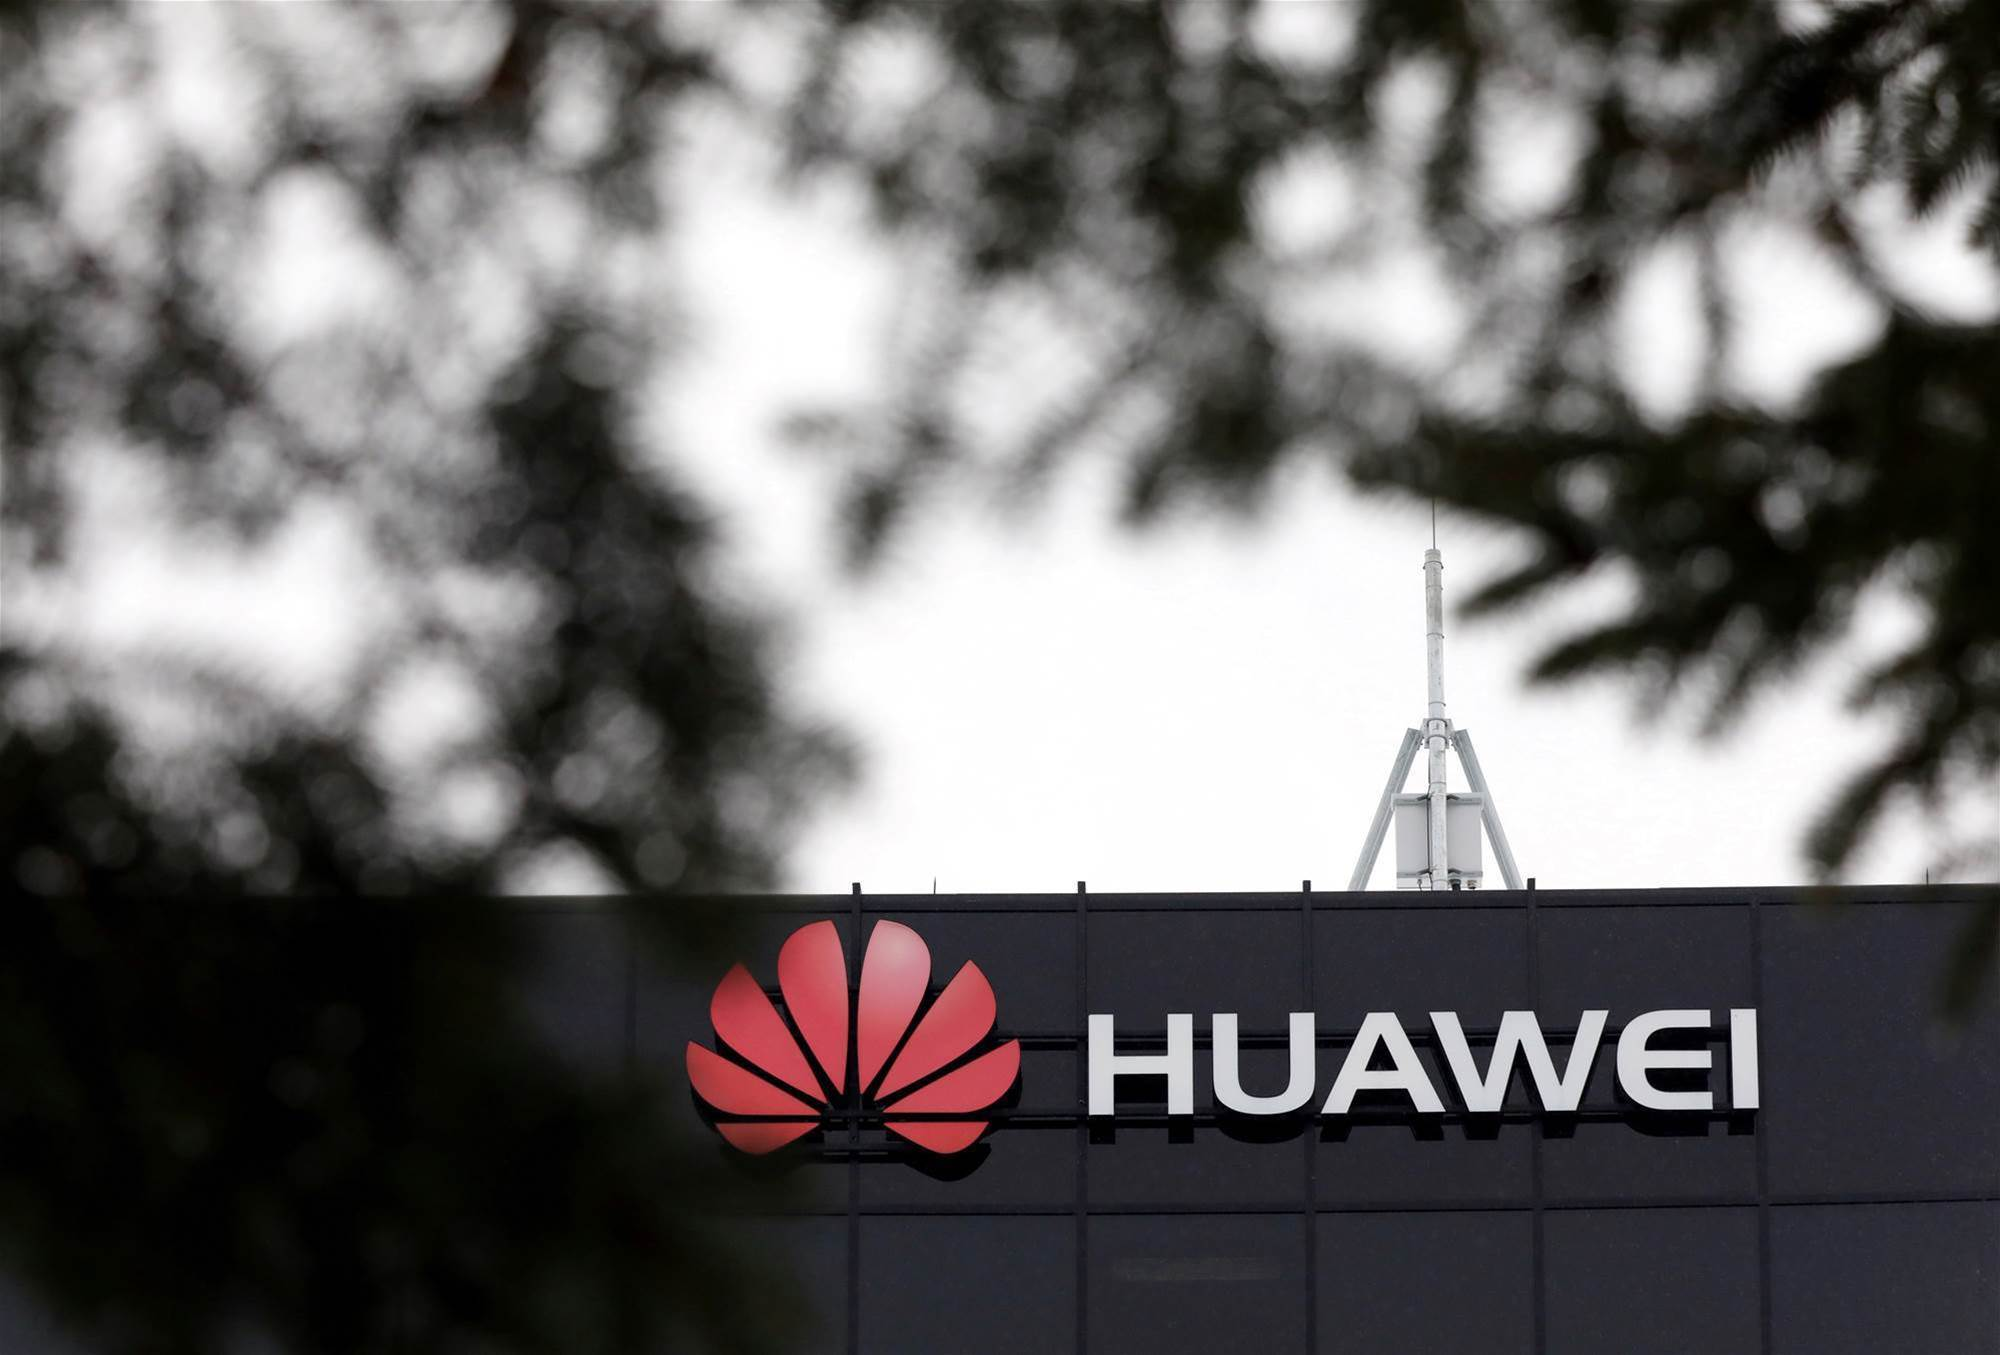 Huawei executive Meng attends bail hearing at Canadian court